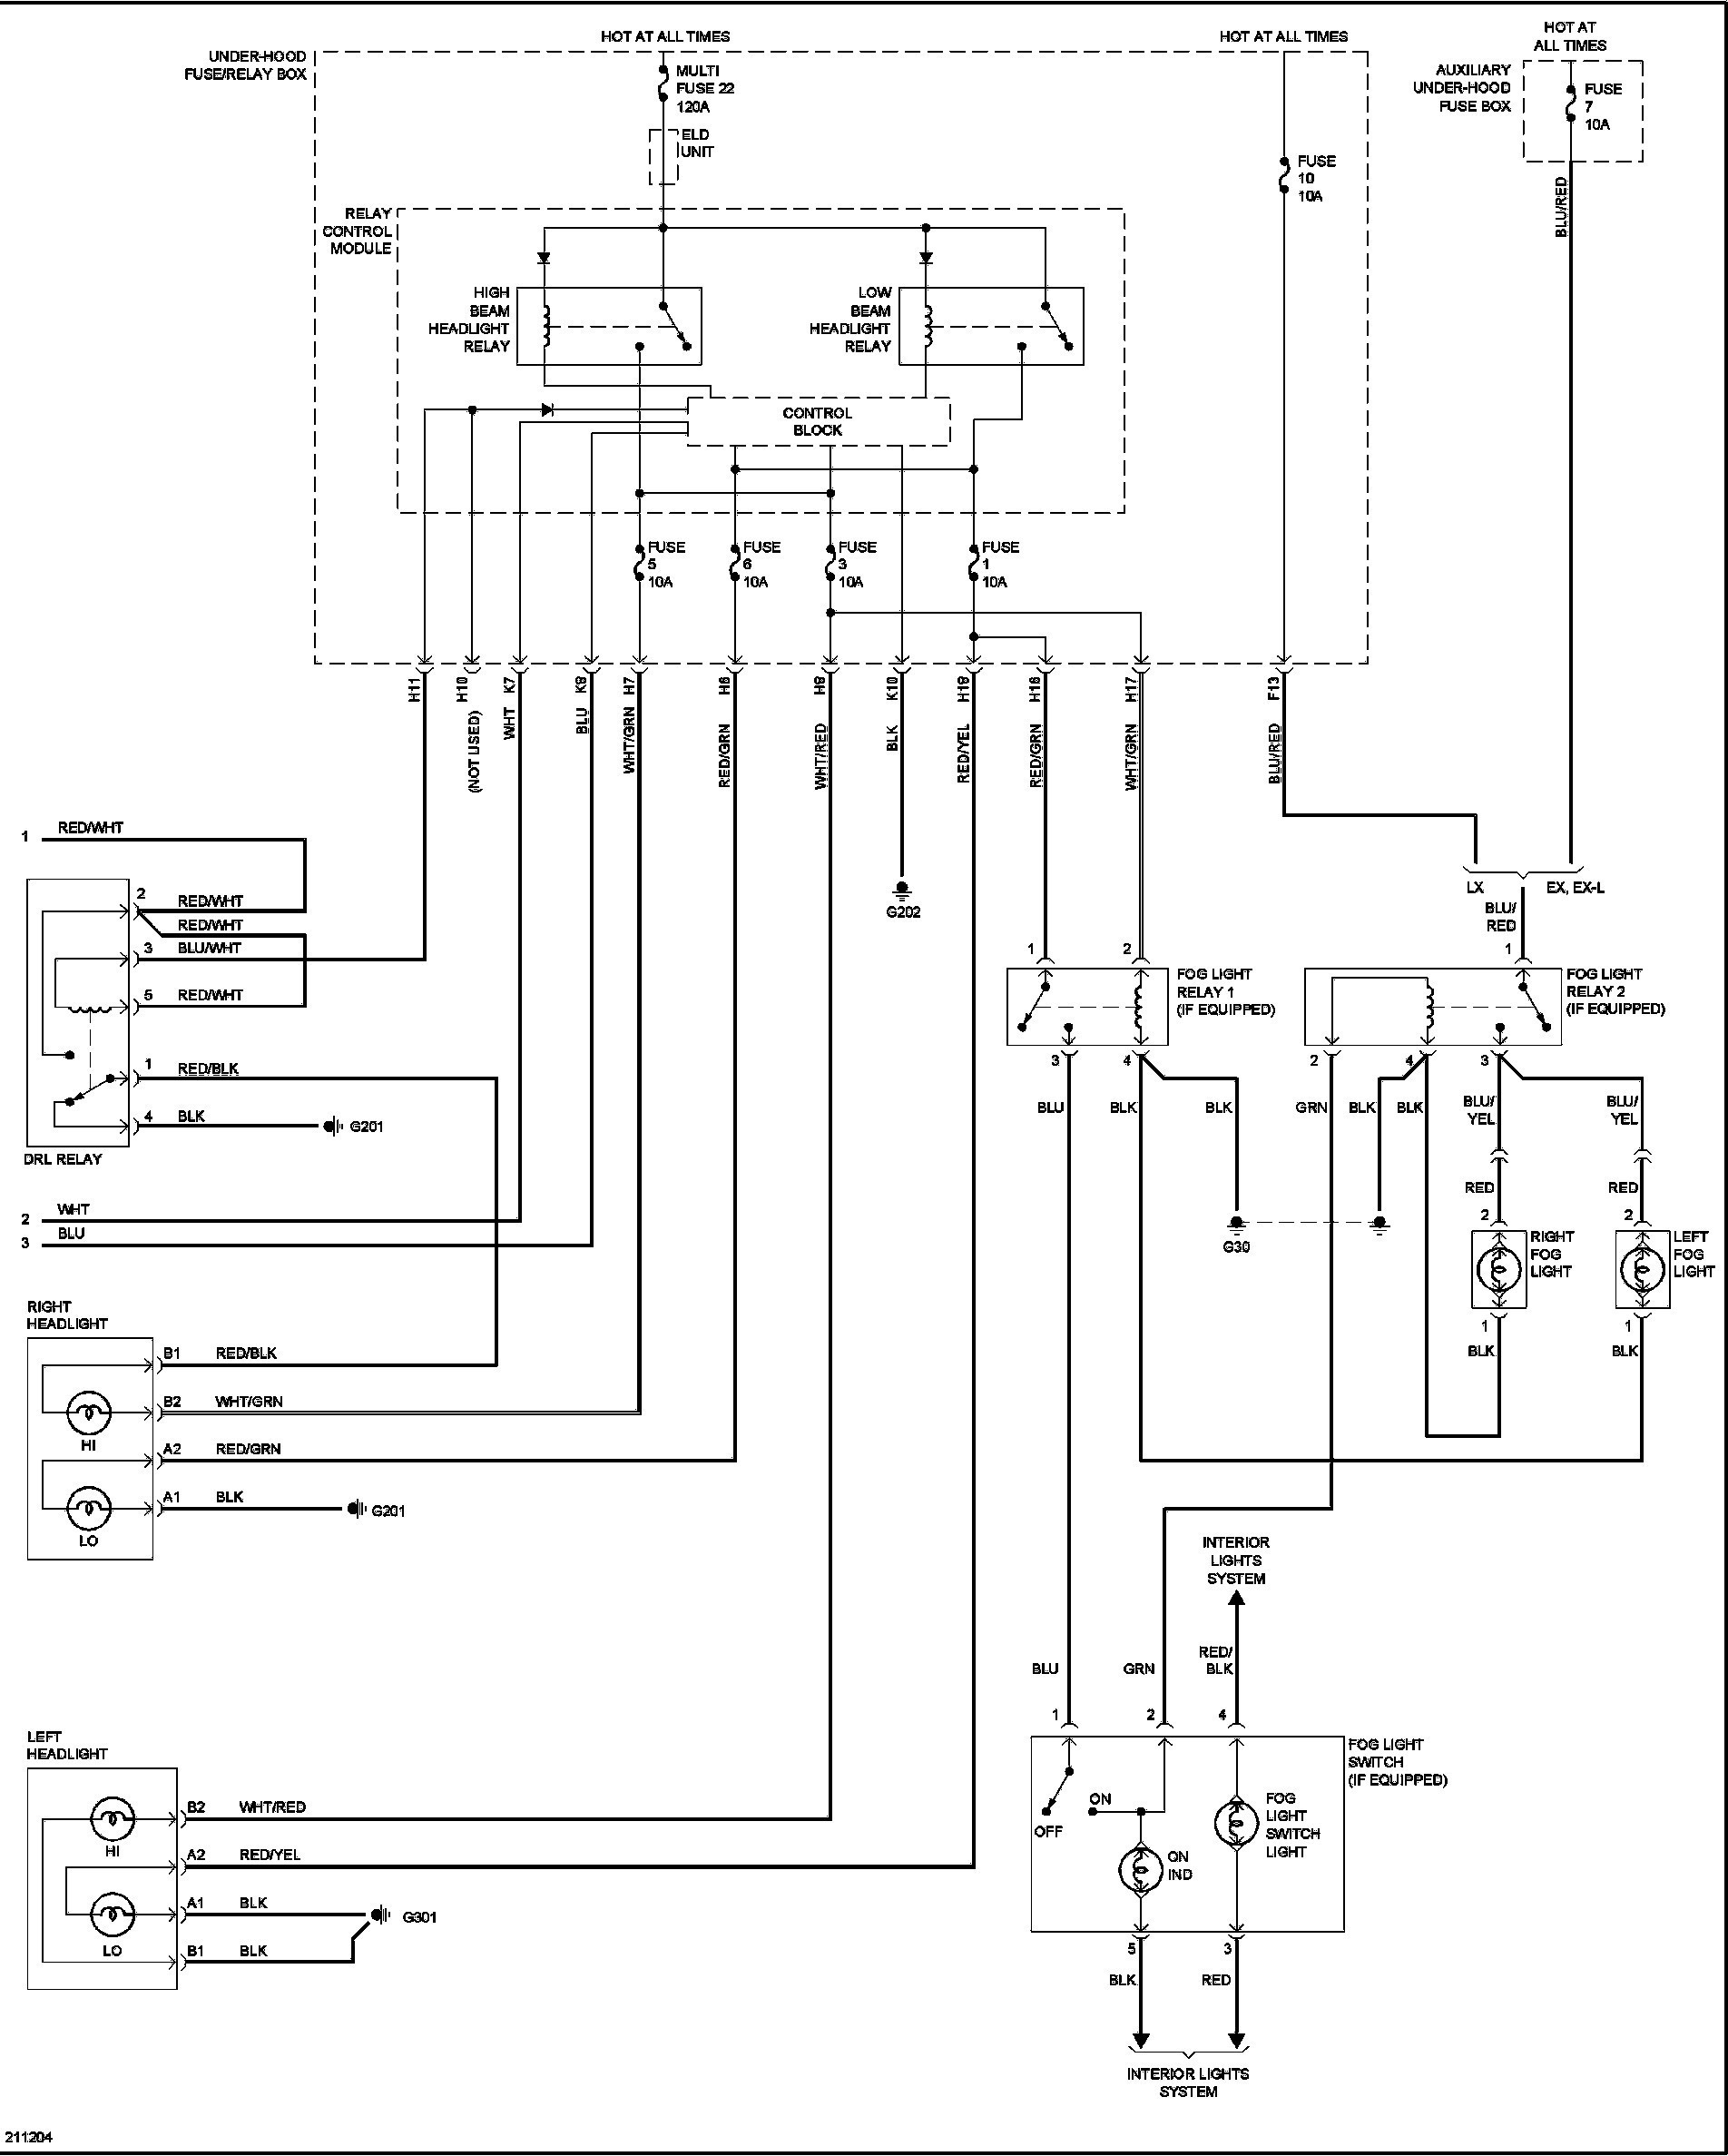 Transmission Wiring Diagram | Wiring Diagram on chevy alternator wiring info, chevy maintenance schedule, chevy speaker wiring, chevy electrical diagrams, chevy oil pressure sending unit, chevy truck wiring, gmc fuse box diagrams, 1999 chevrolet truck diagrams, chevy headlight switch wiring, chevy gas line diagrams, chevy starting system, chevy truck diagrams, chevy heater core replacement, chevy radio wiring, chevy cooling system, chevy starter diagrams, chevy brake diagrams, chevy alternator diagrams, chevy accessories, chevy wiring harness,